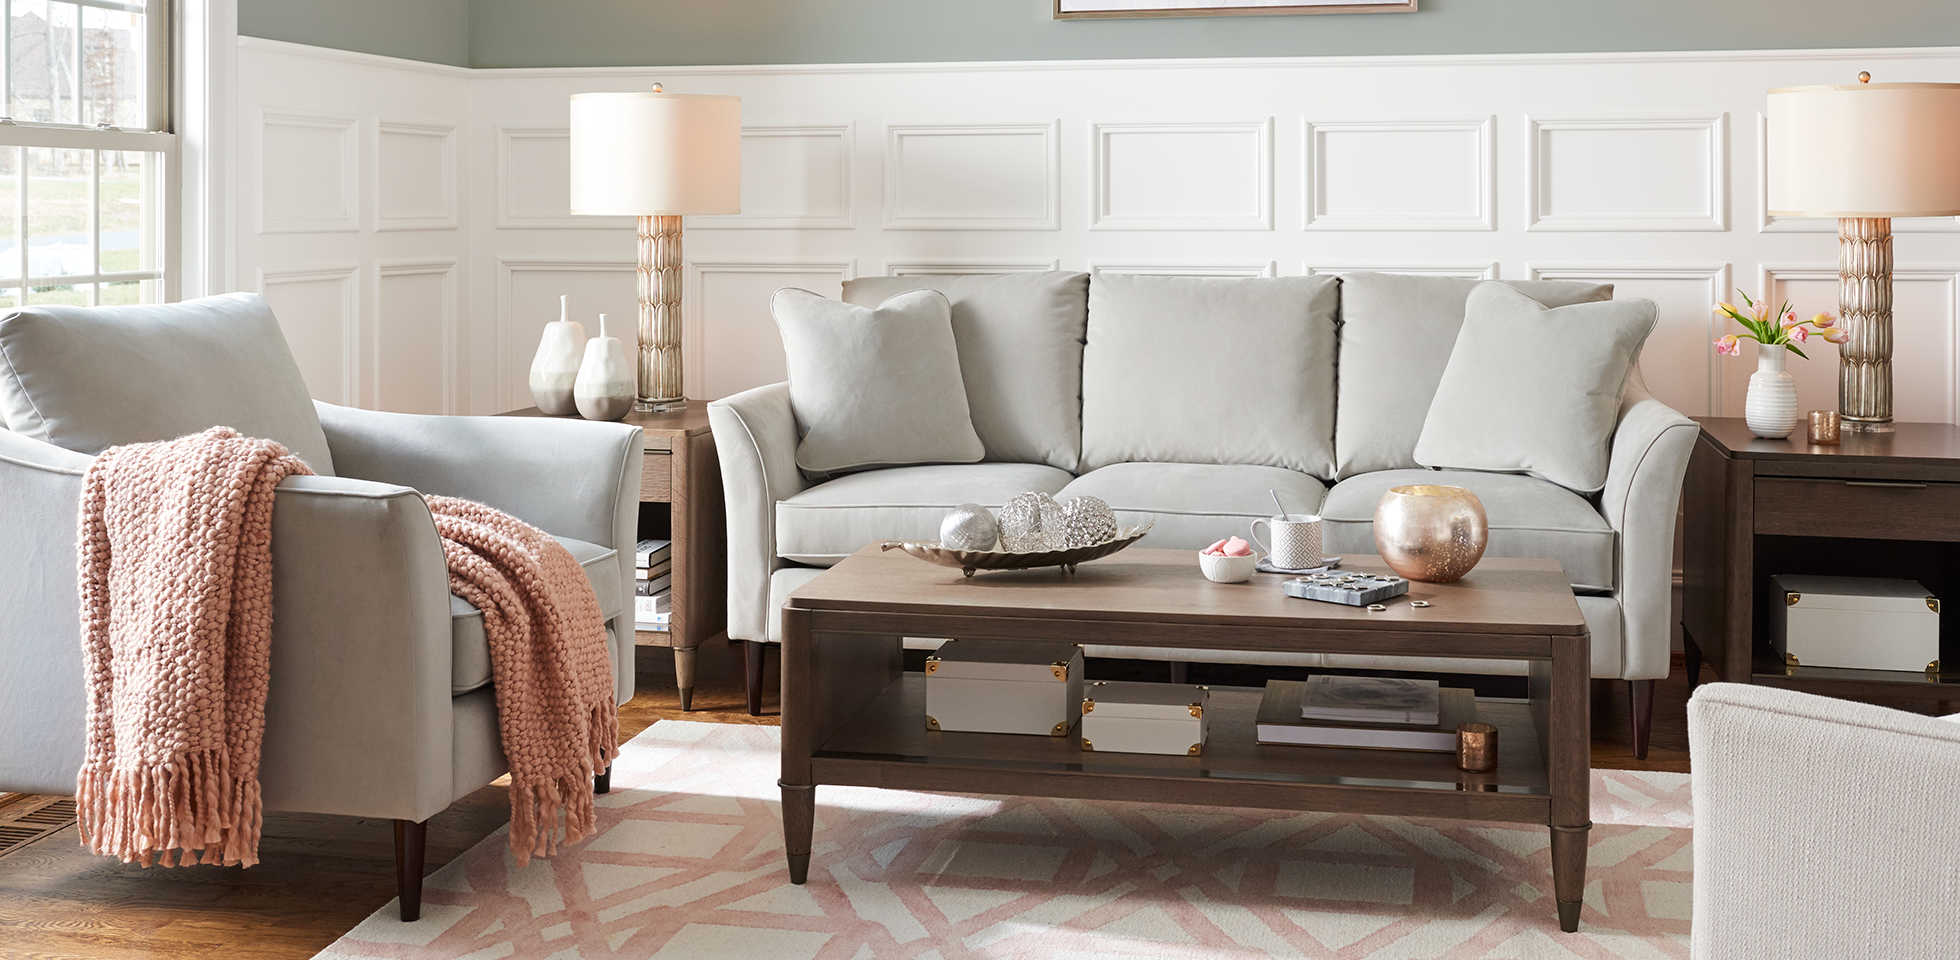 Living room scene with Violet Sofa and Chair with custom wood finish